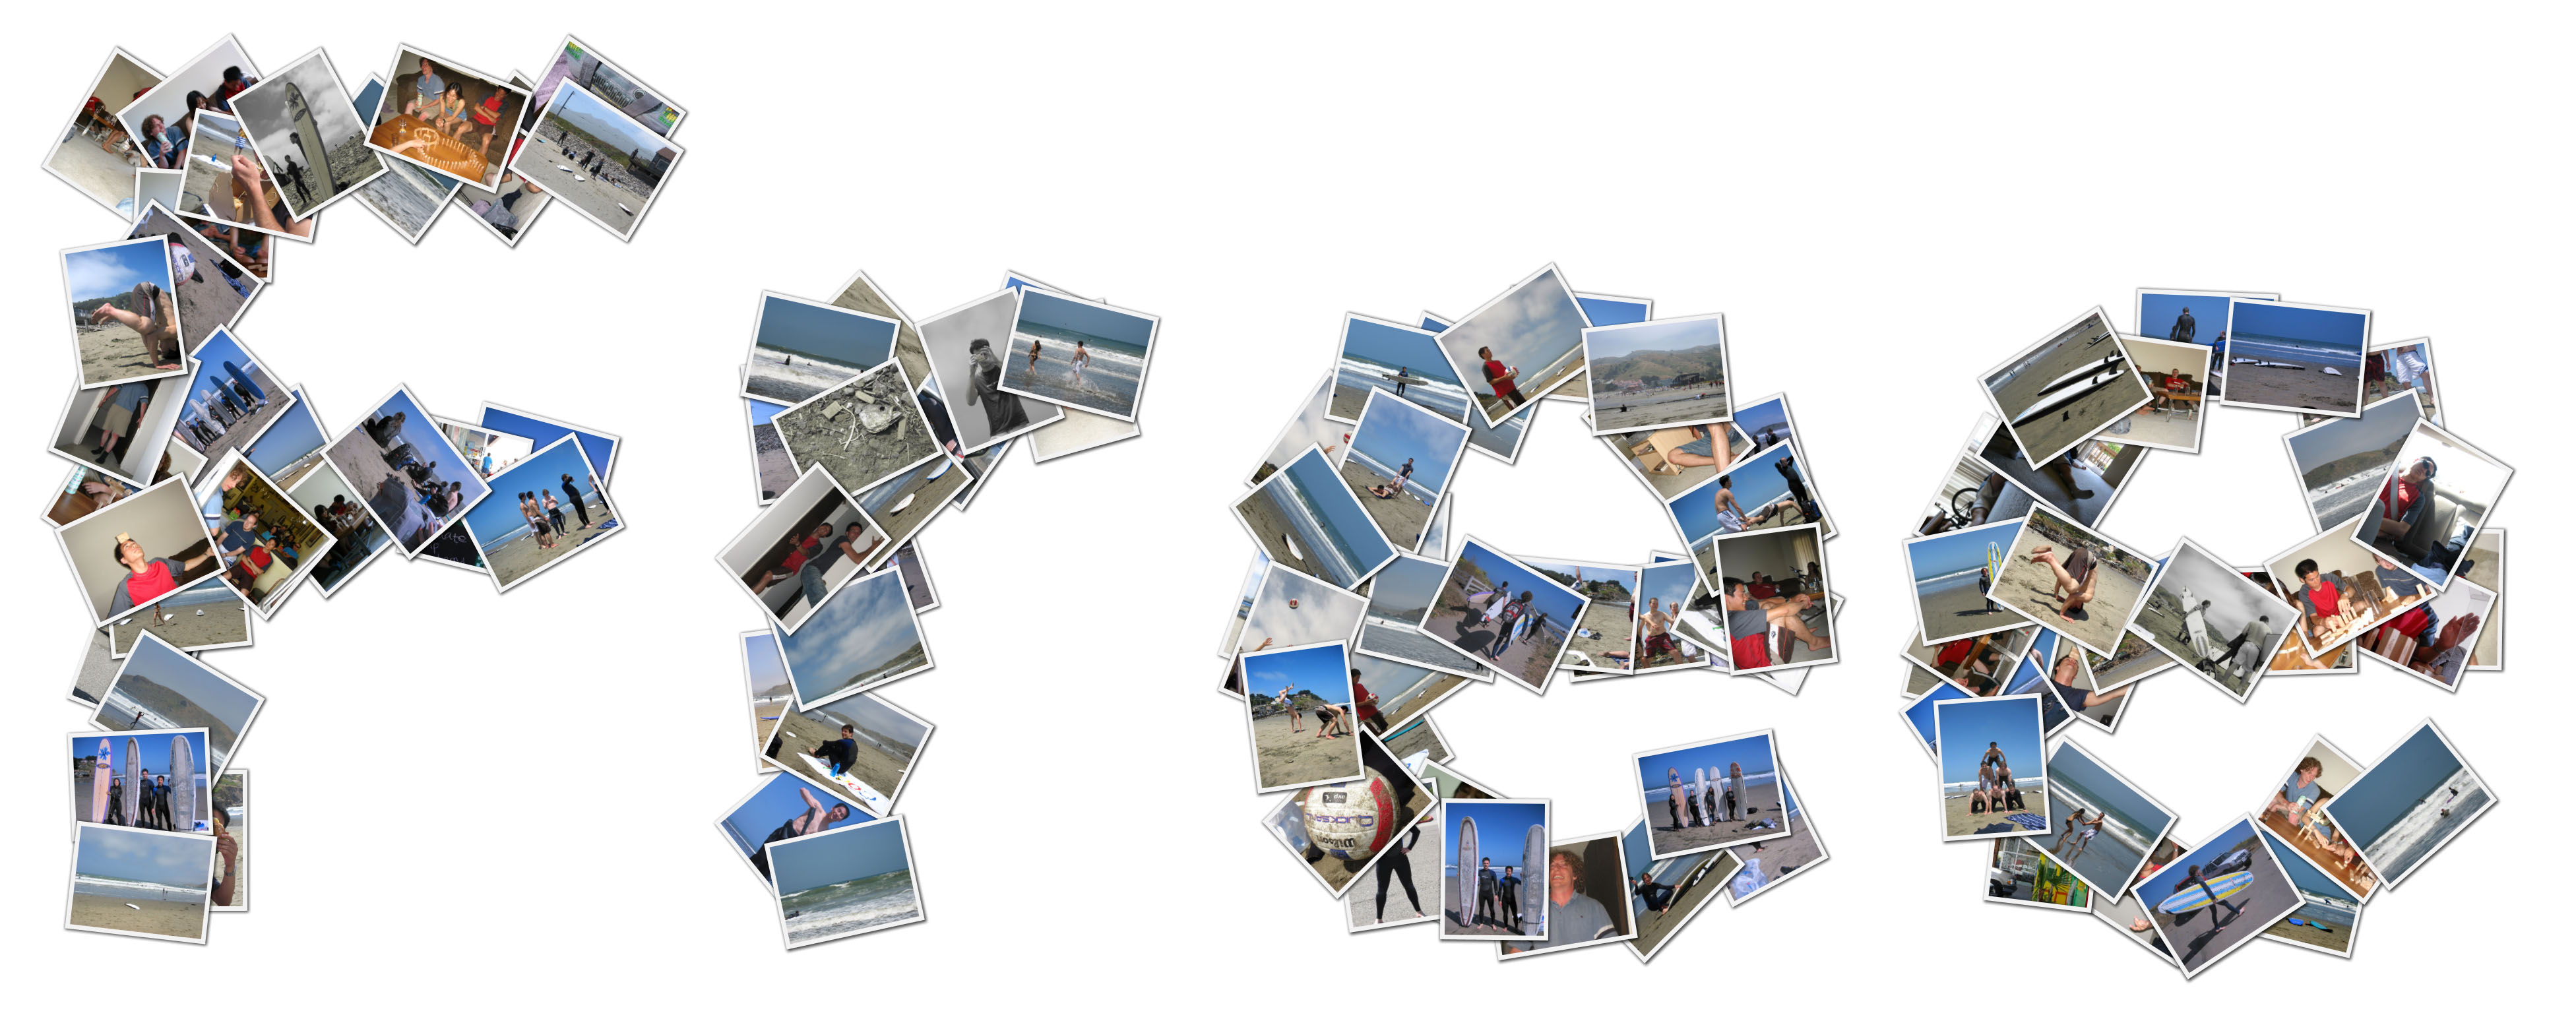 Realizzare collages con le proprie foto shape collage for Collage foto online gratis italiano